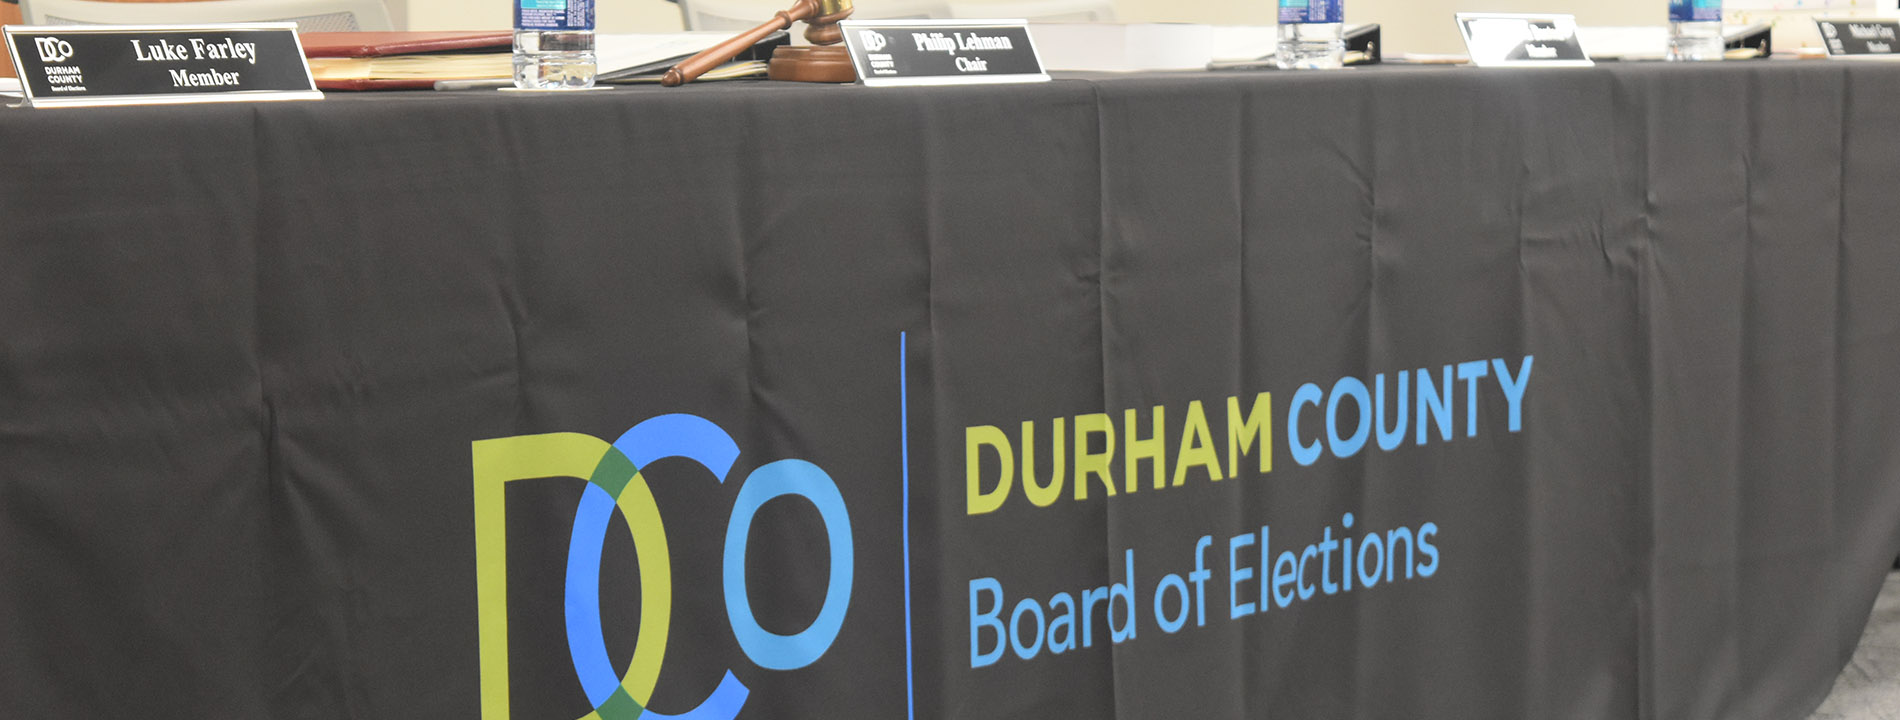 Board of Elections logo on table with gavel